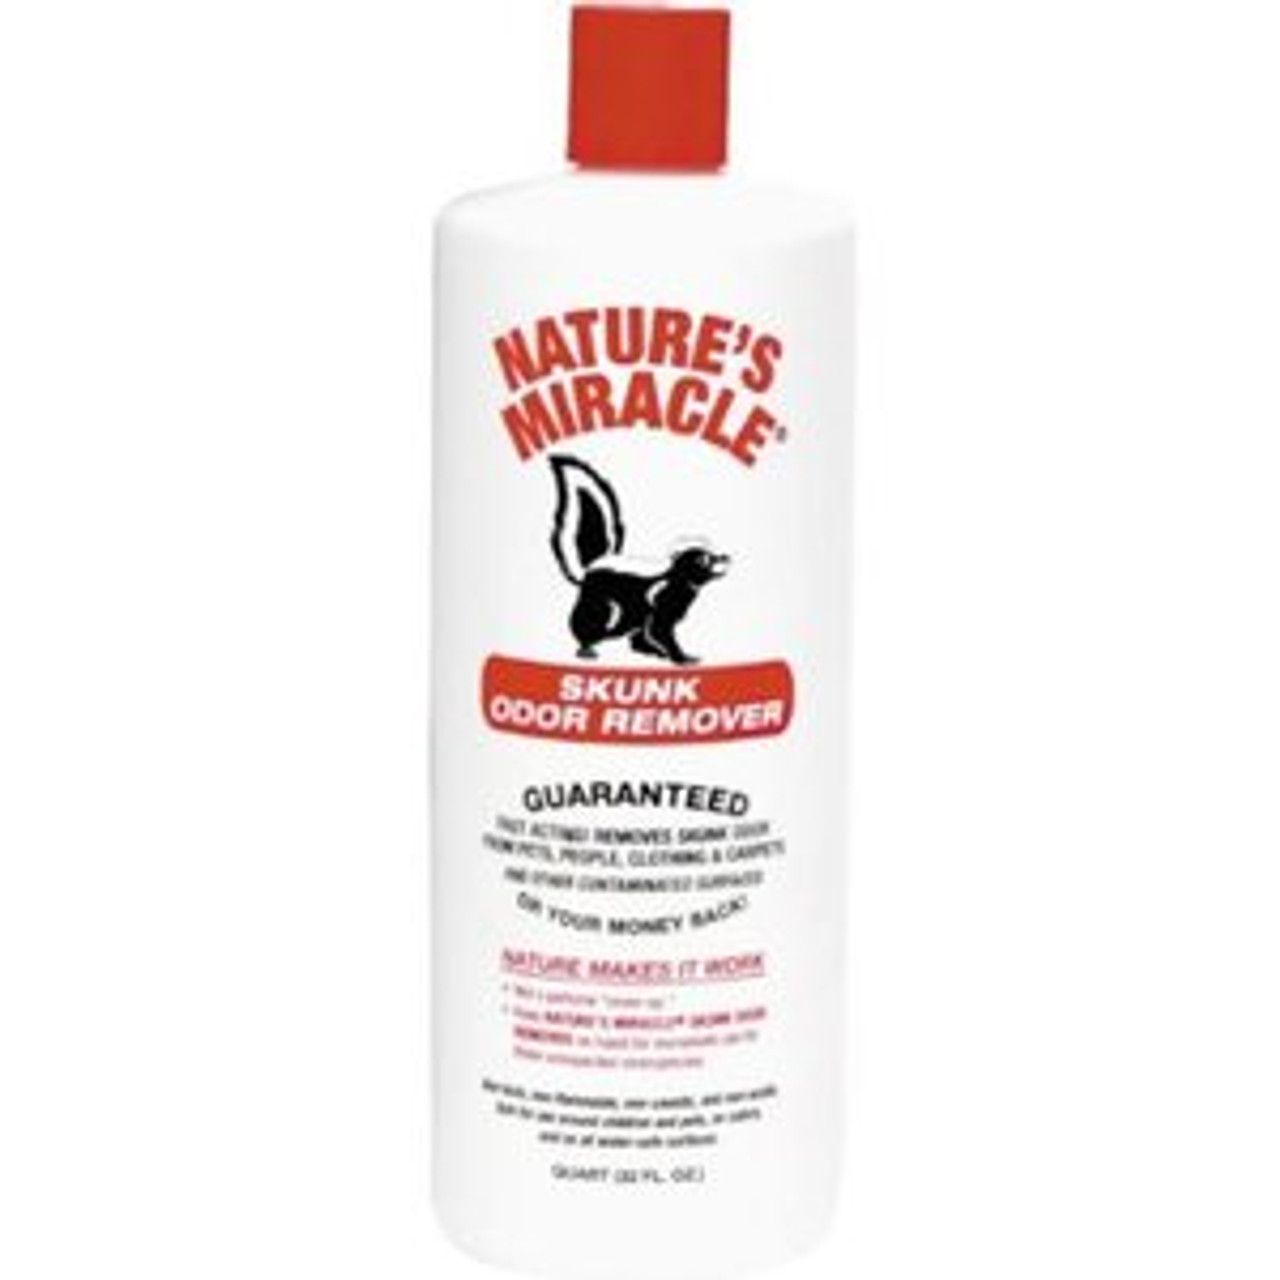 Nature's Miracle Skunk Remover (32 oz )